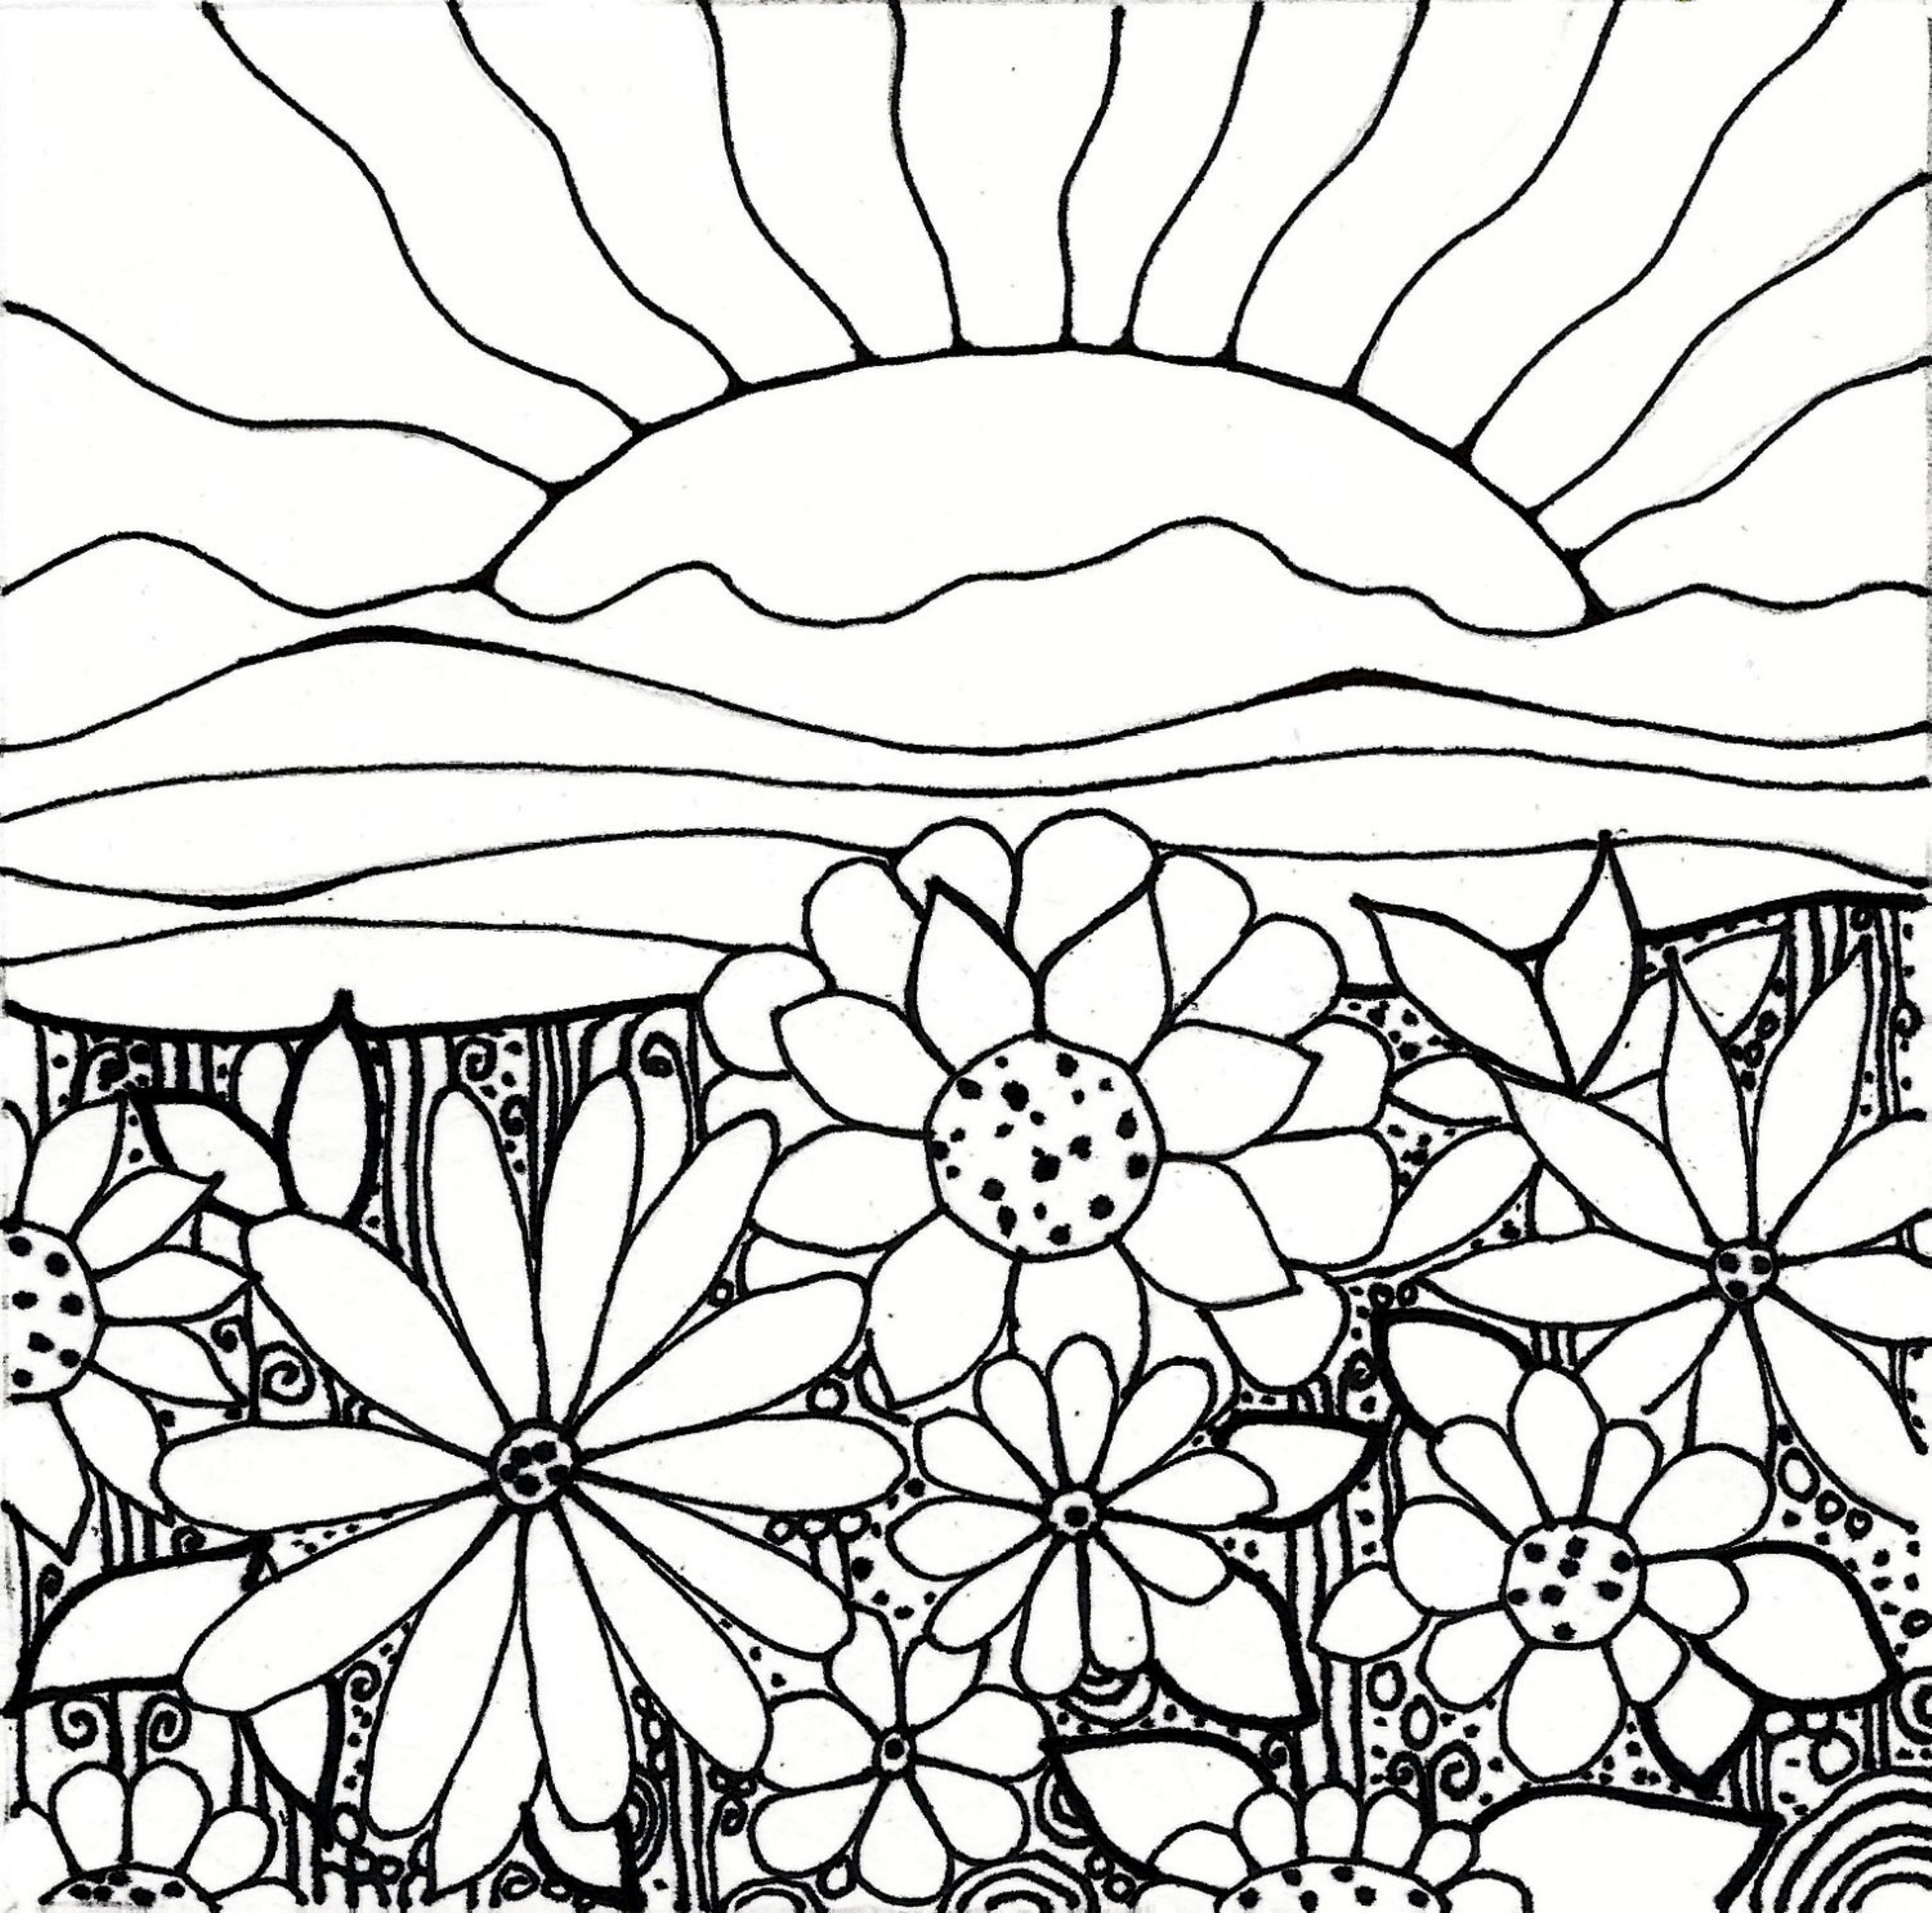 - Sunset -- I Can See This Done In A Combination Of Embroidery And